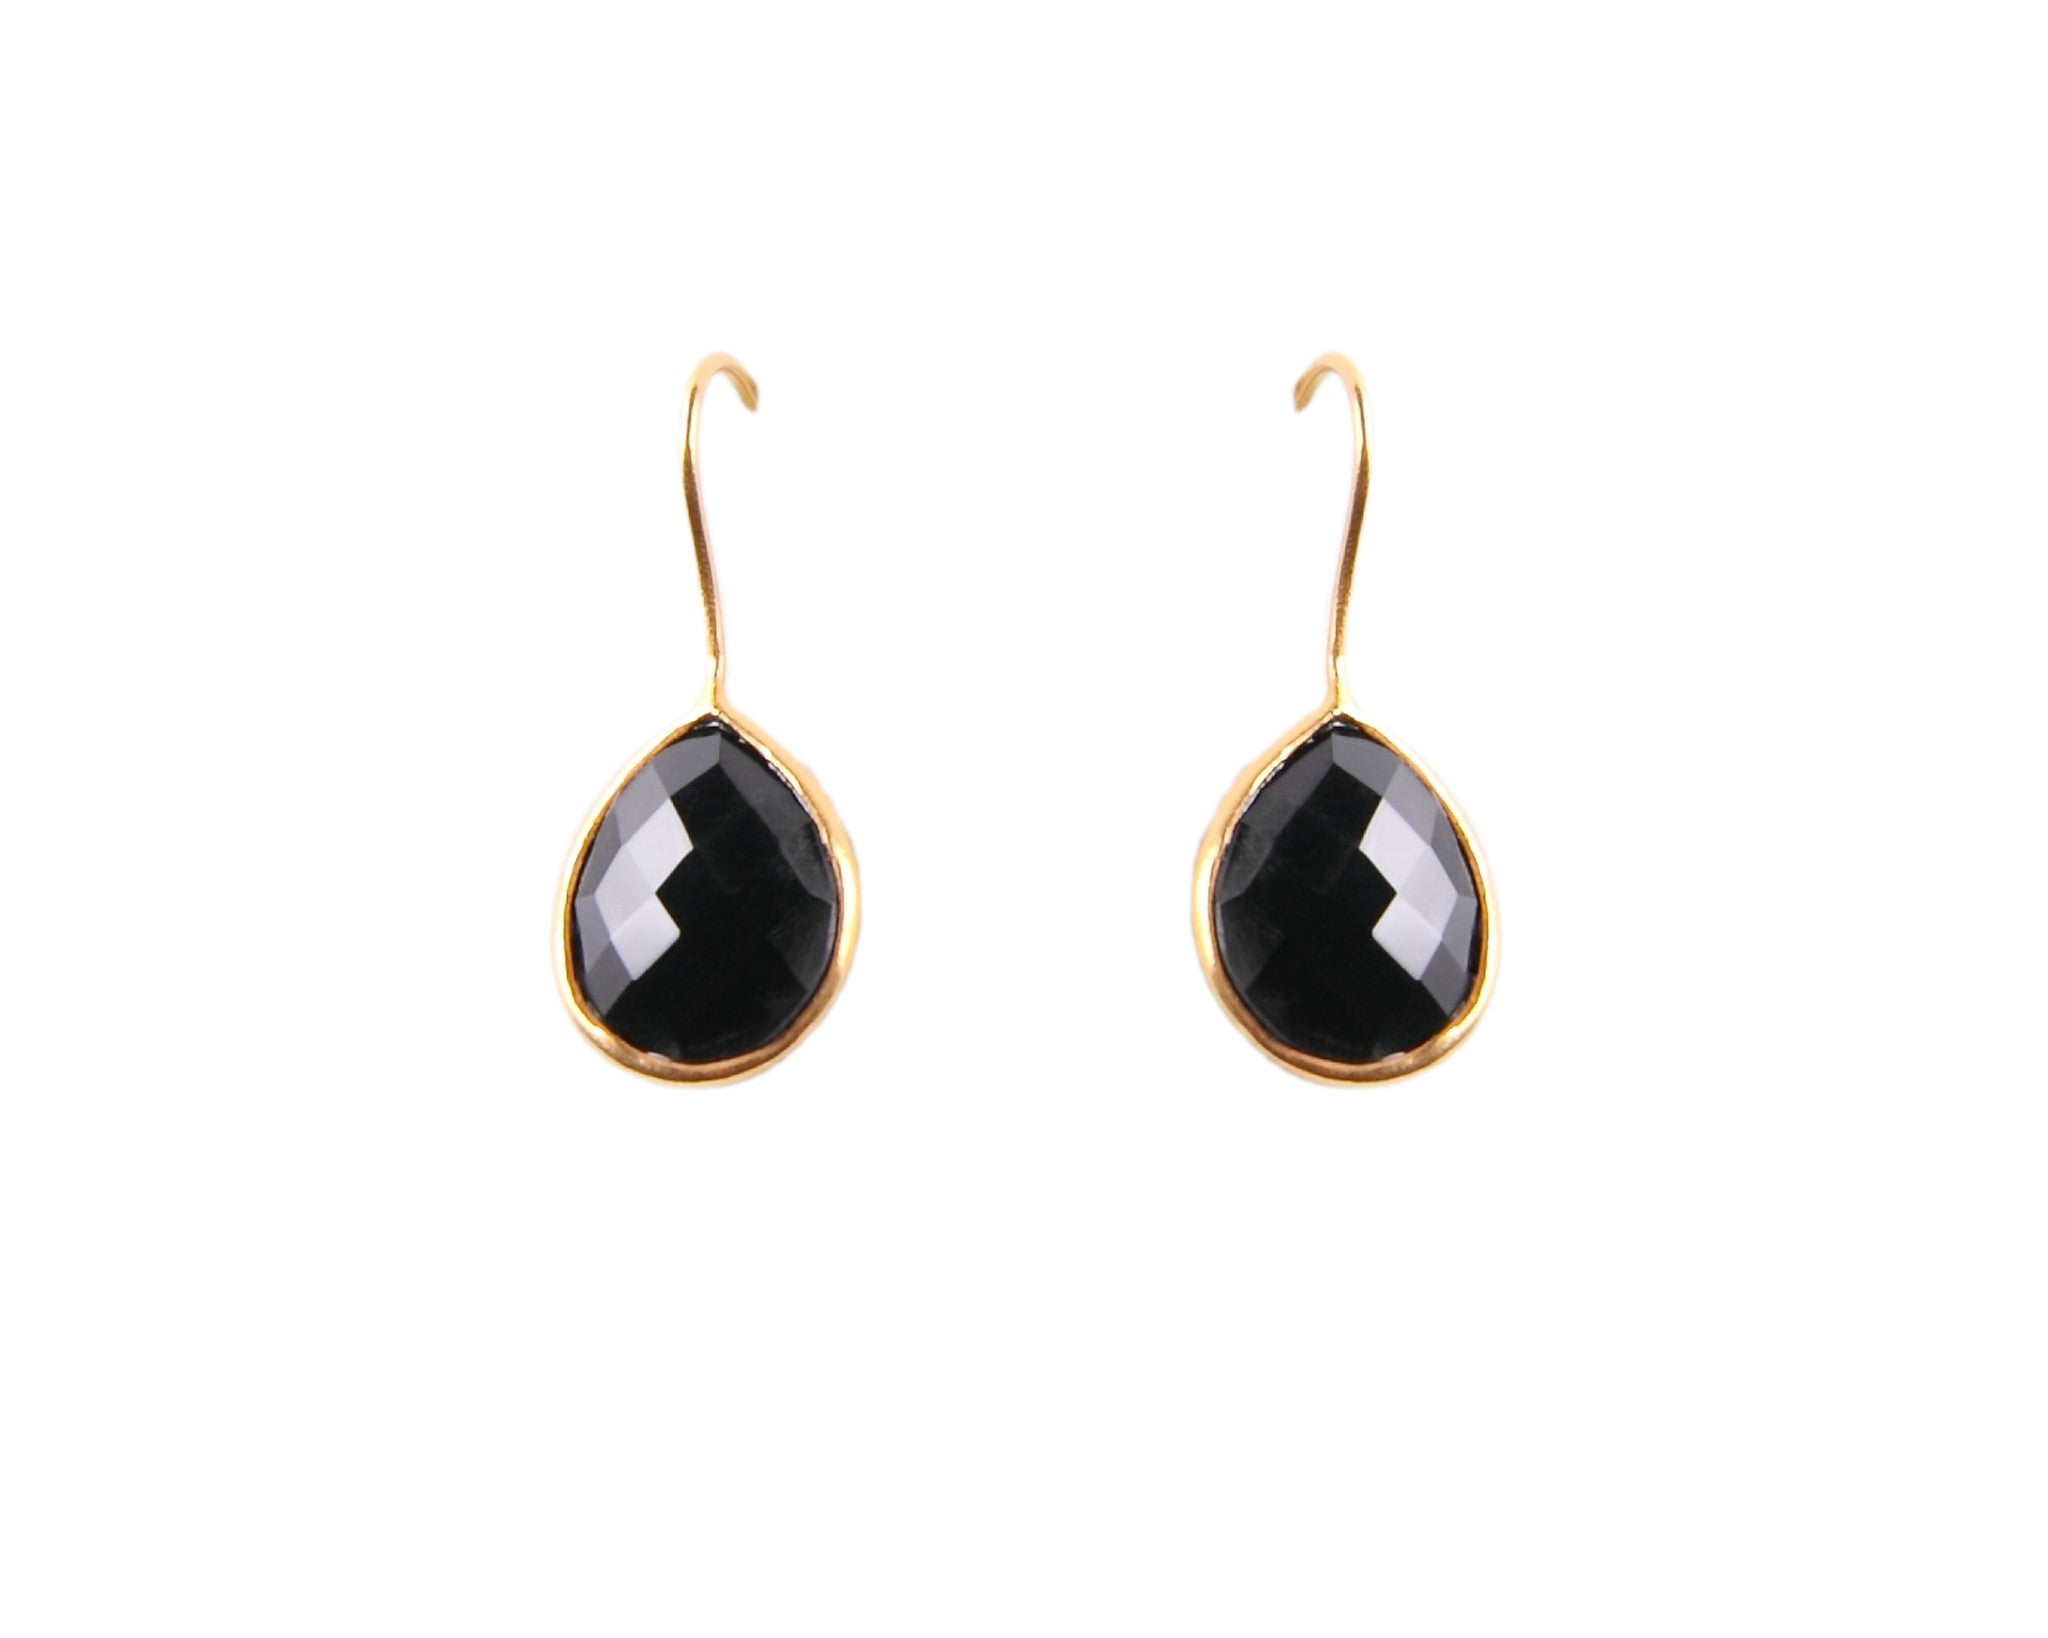 22KT Gold Plated Black Onyx Drop Earrings from the Raindrop Collection